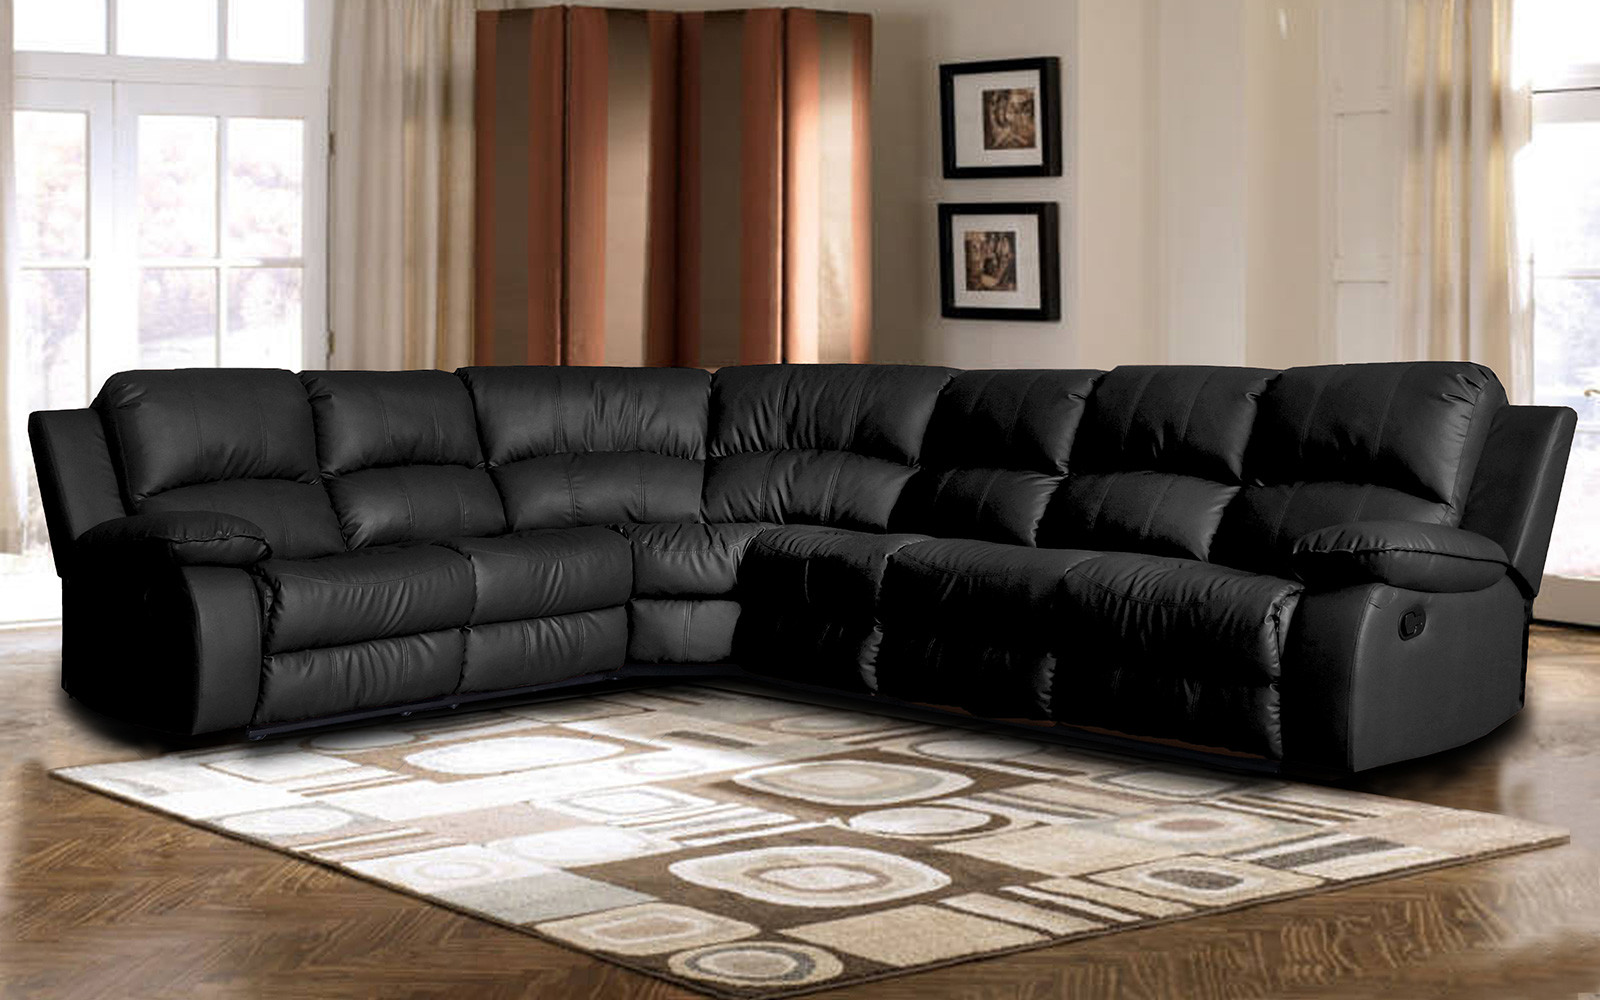 Classic Oversize and Overstuffed Corner Bonded Leather Sectional with 2 Reclining Seats  sc 1 st  Walmart : bonded leather sectionals - Sectionals, Sofas & Couches